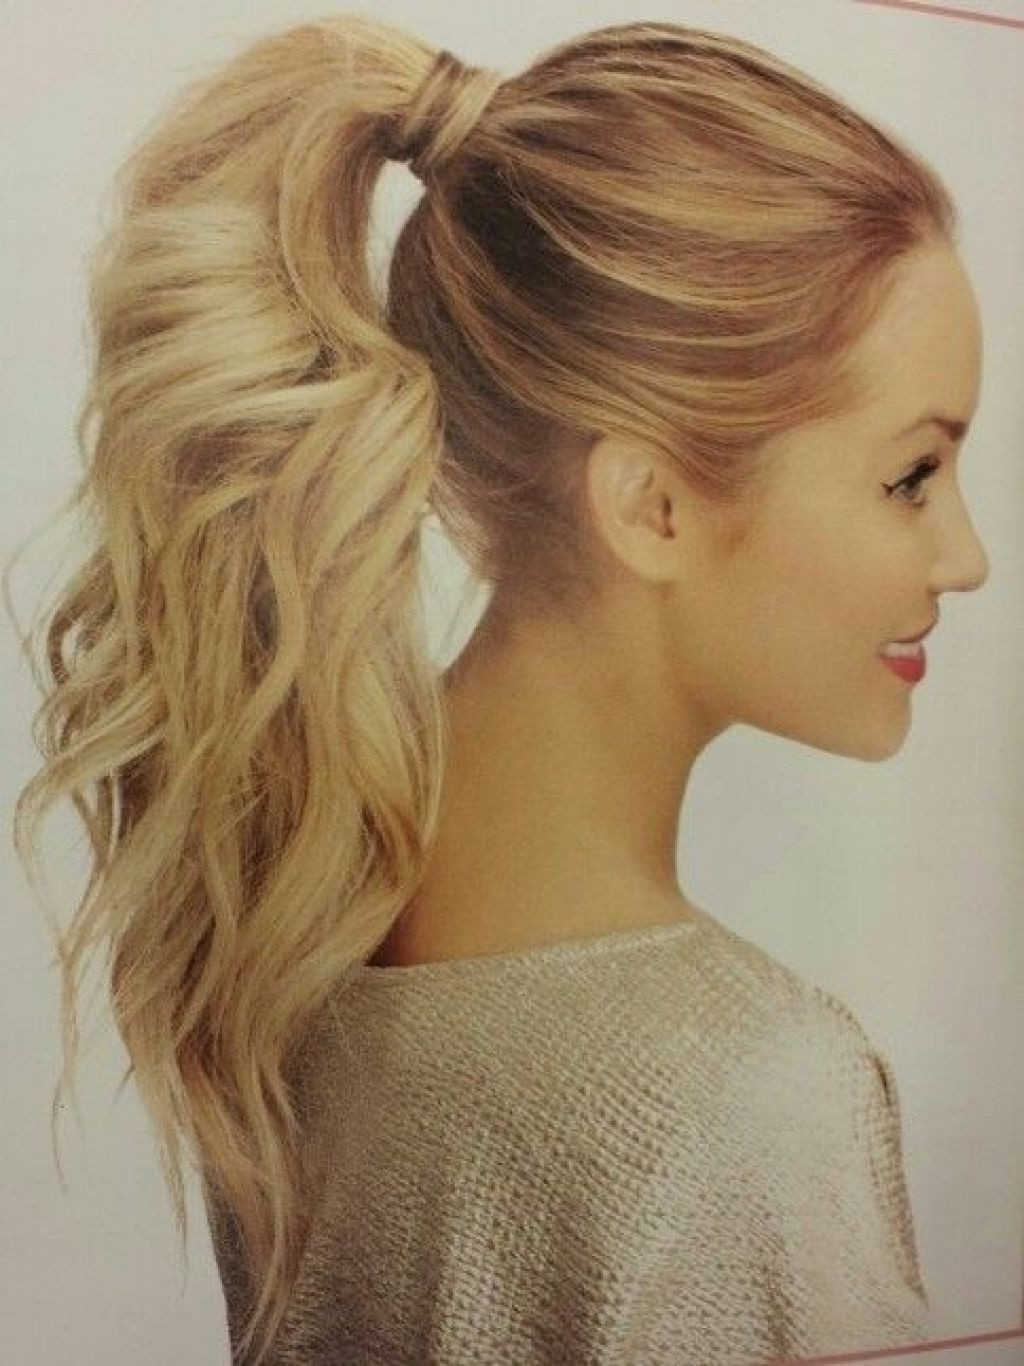 Ponytail Hairstyles For Long Hair – Women Medium Haircut With Regard To Ponytail Updo Hairstyles For Medium Hair (View 14 of 15)